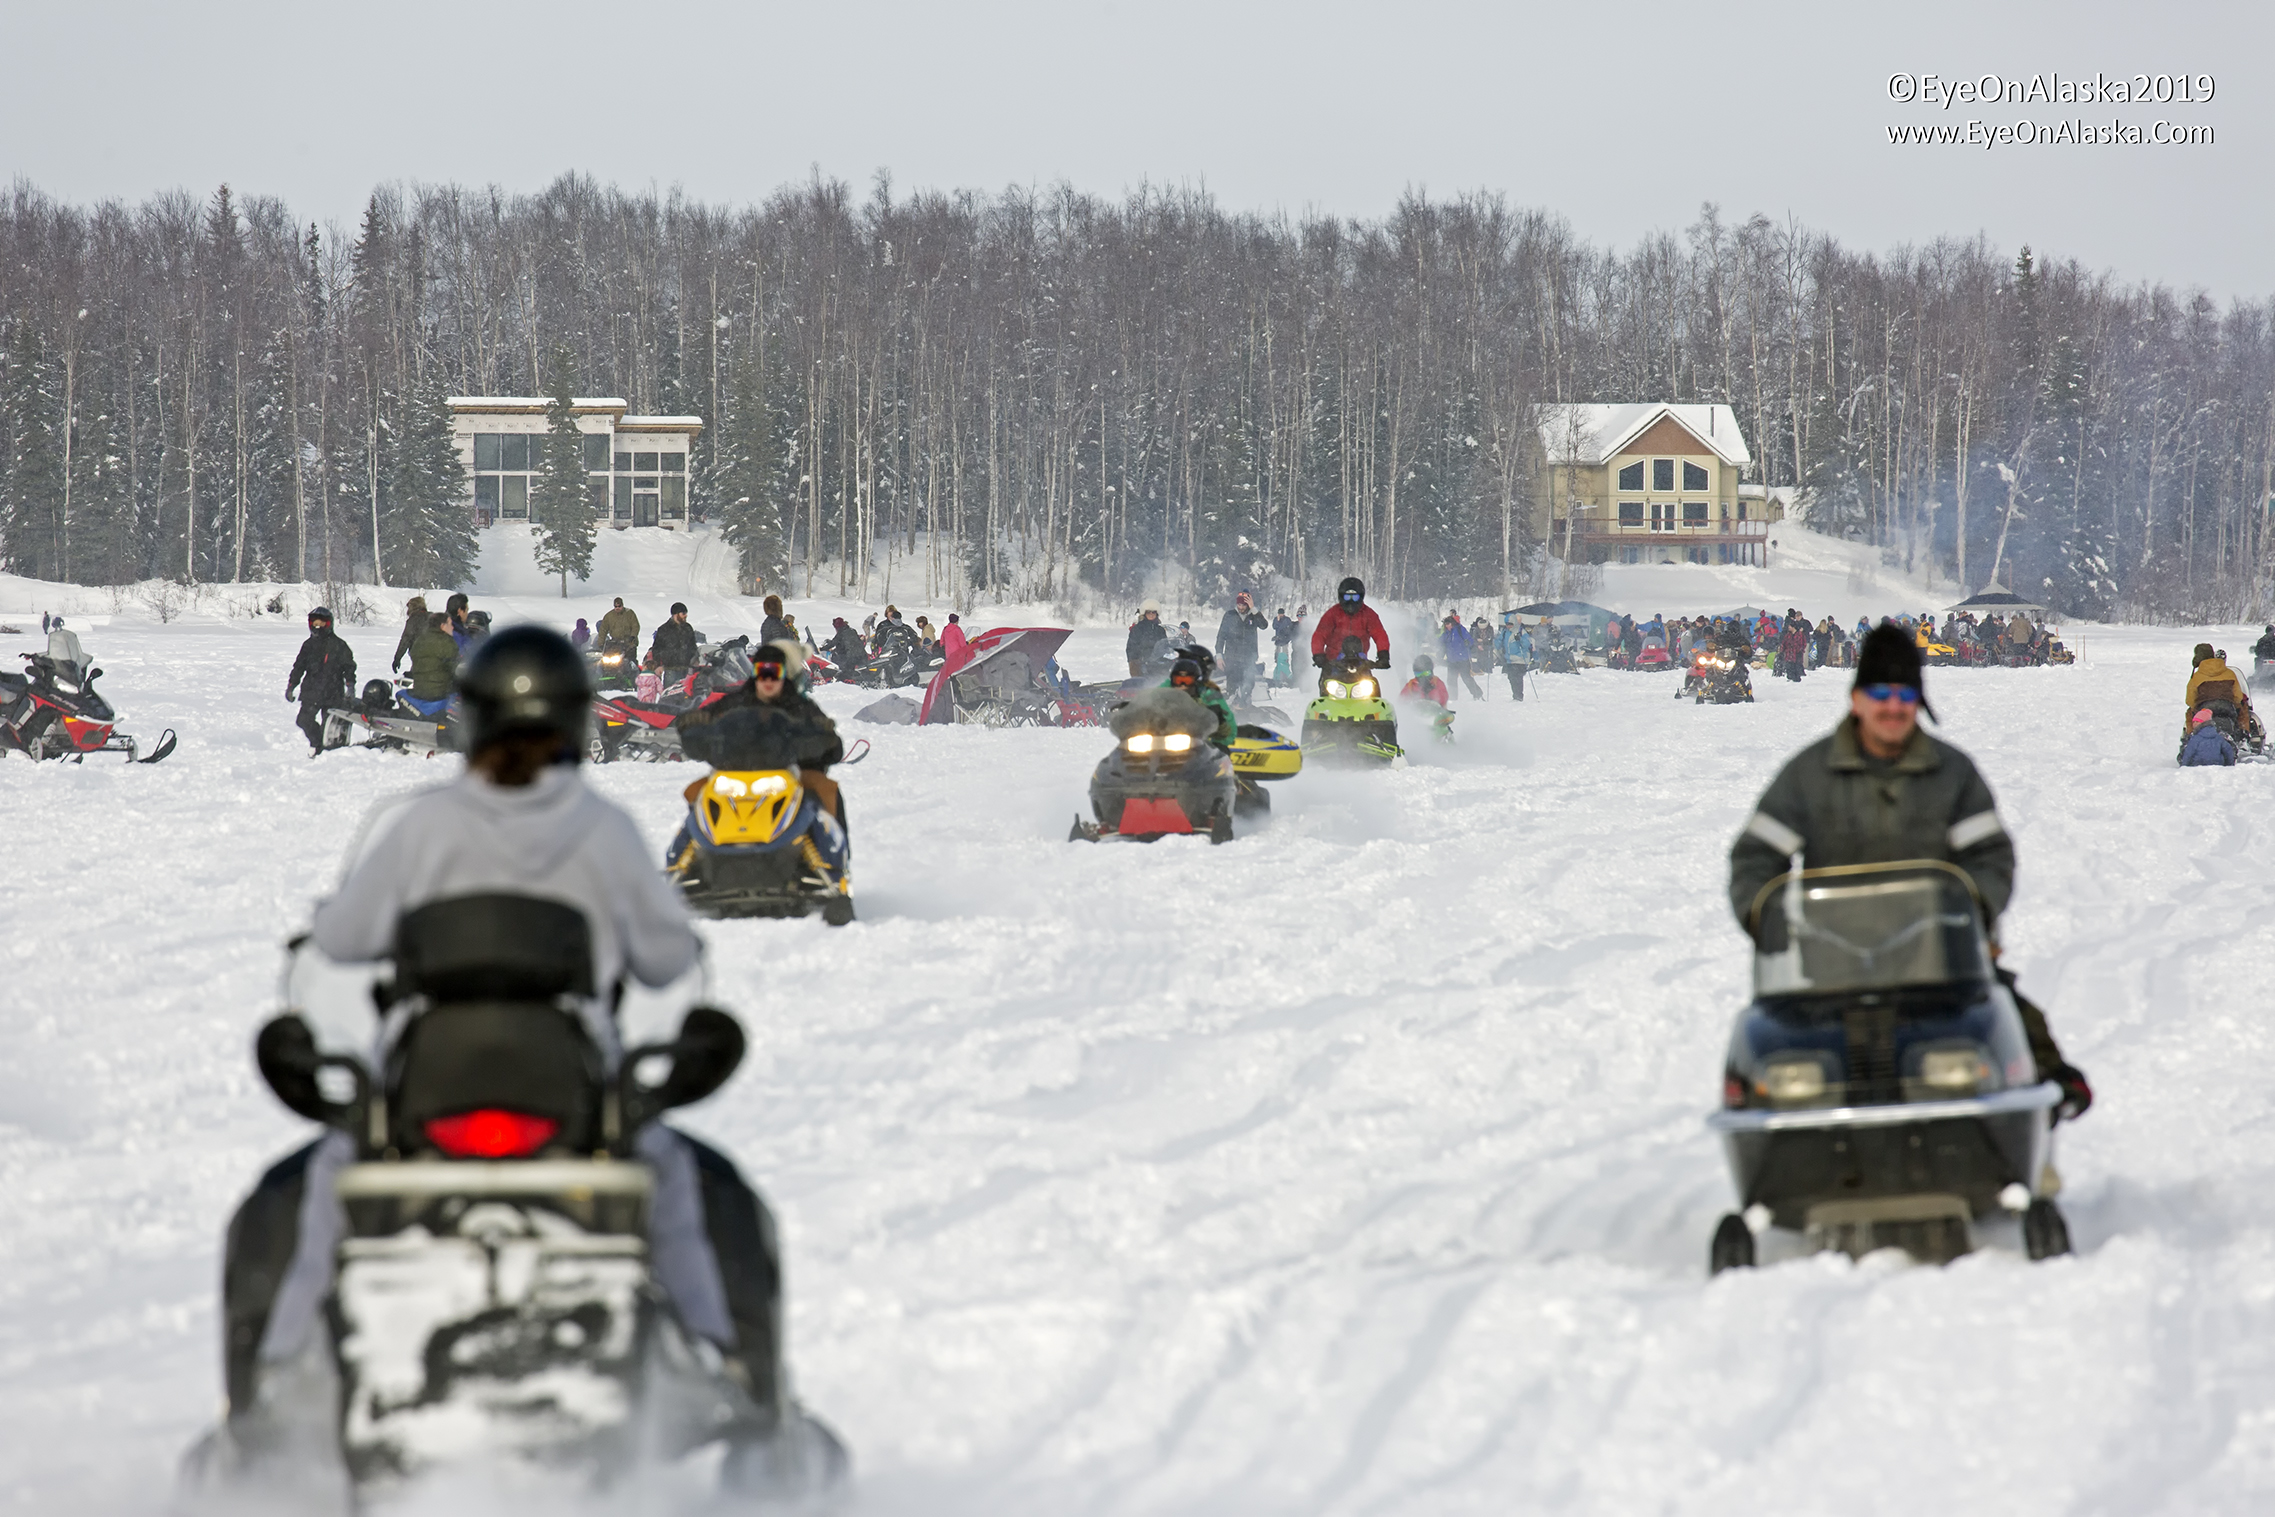 The crowds begin to form on Long Lake before the first Iditarod teams come through.  It's time to tailgate, Alaska style.